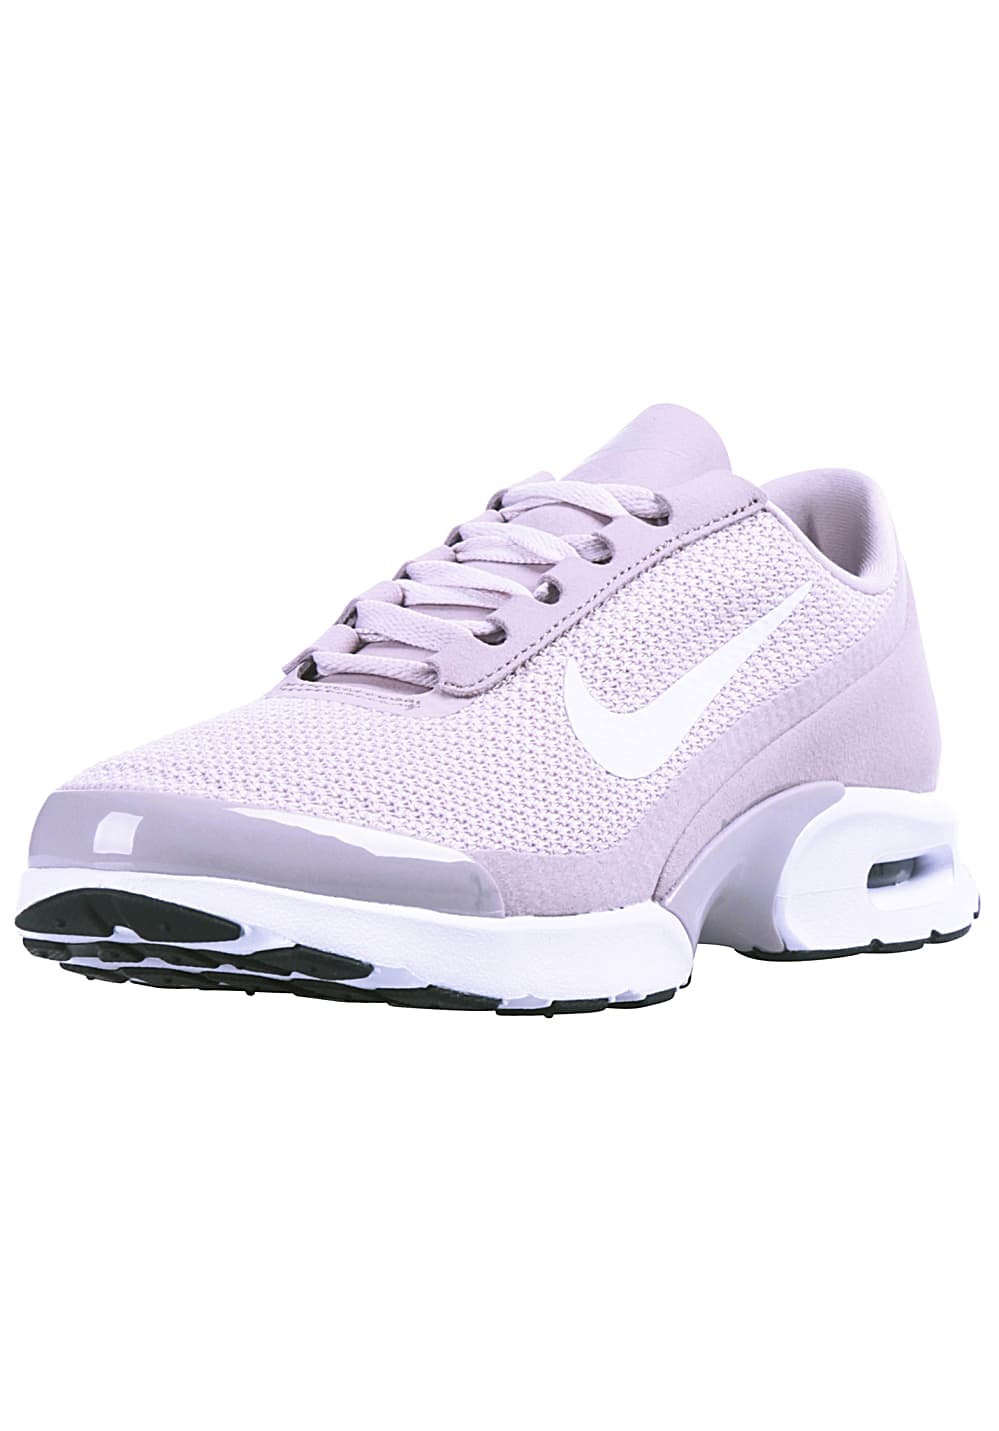 Nike Sportswear AIR MAX JEWELL Sneakers particle rose white